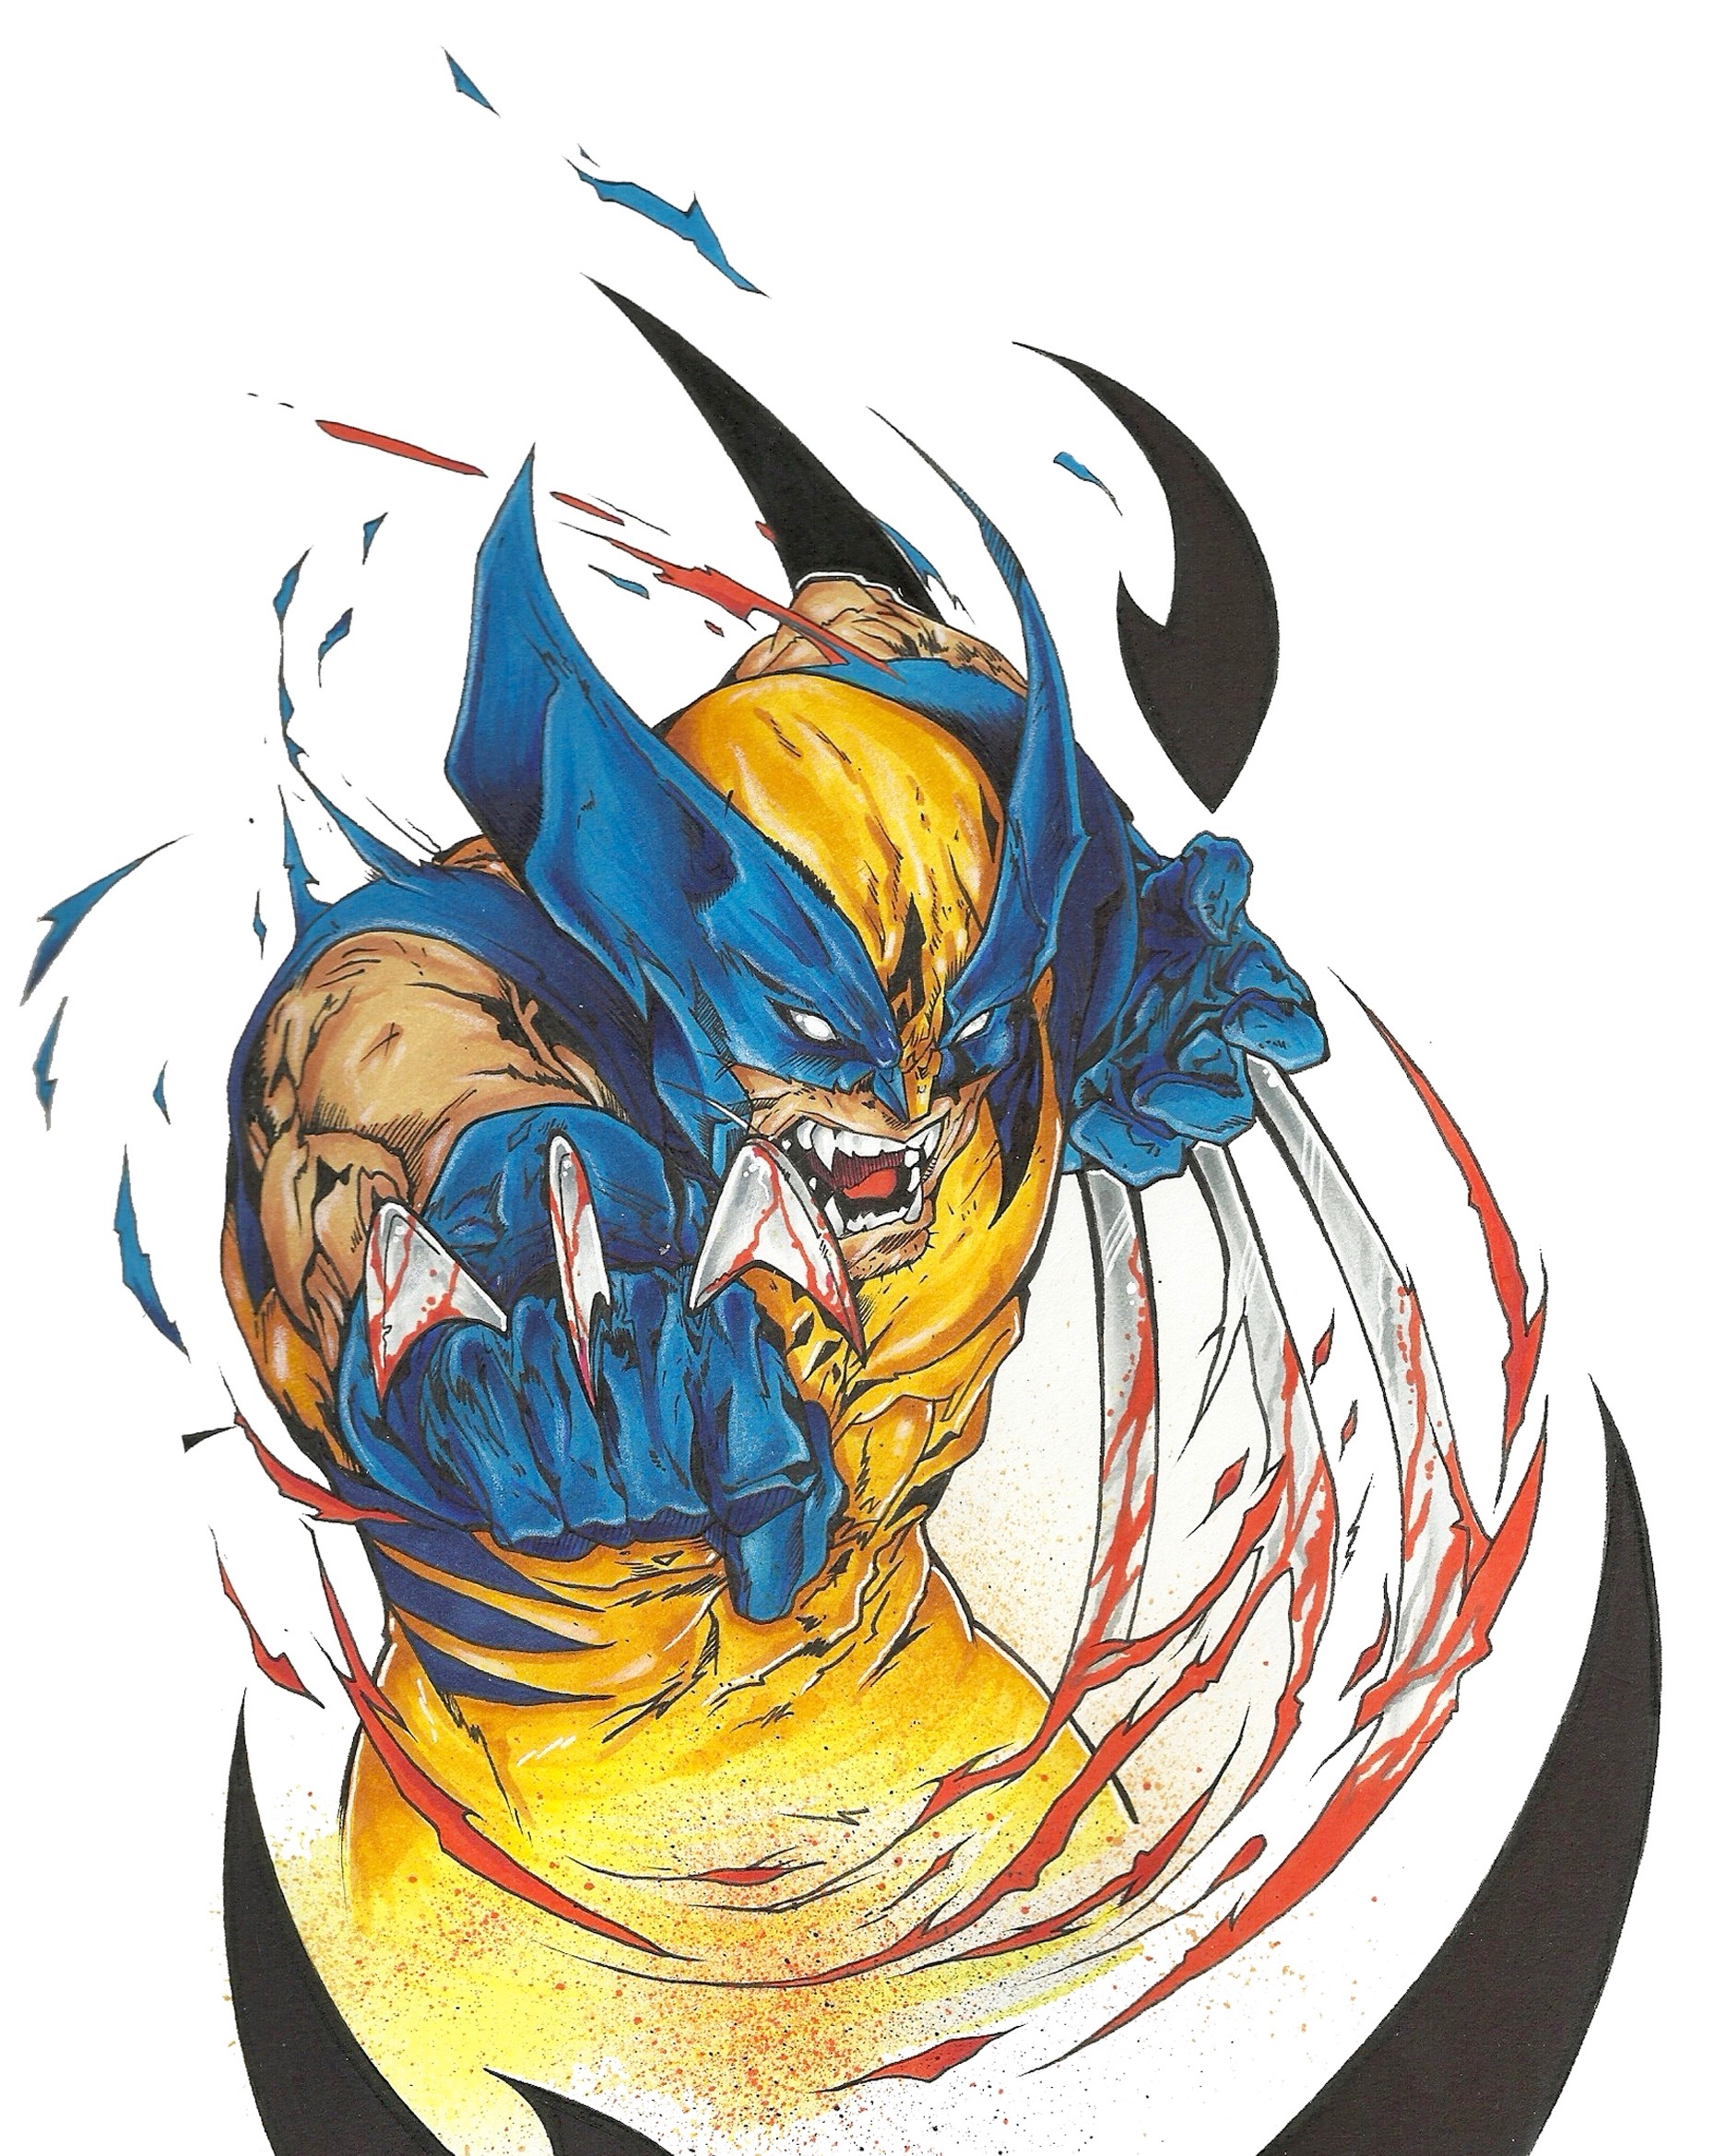 Wolverine by Nover, Markers on Paper, 2014.